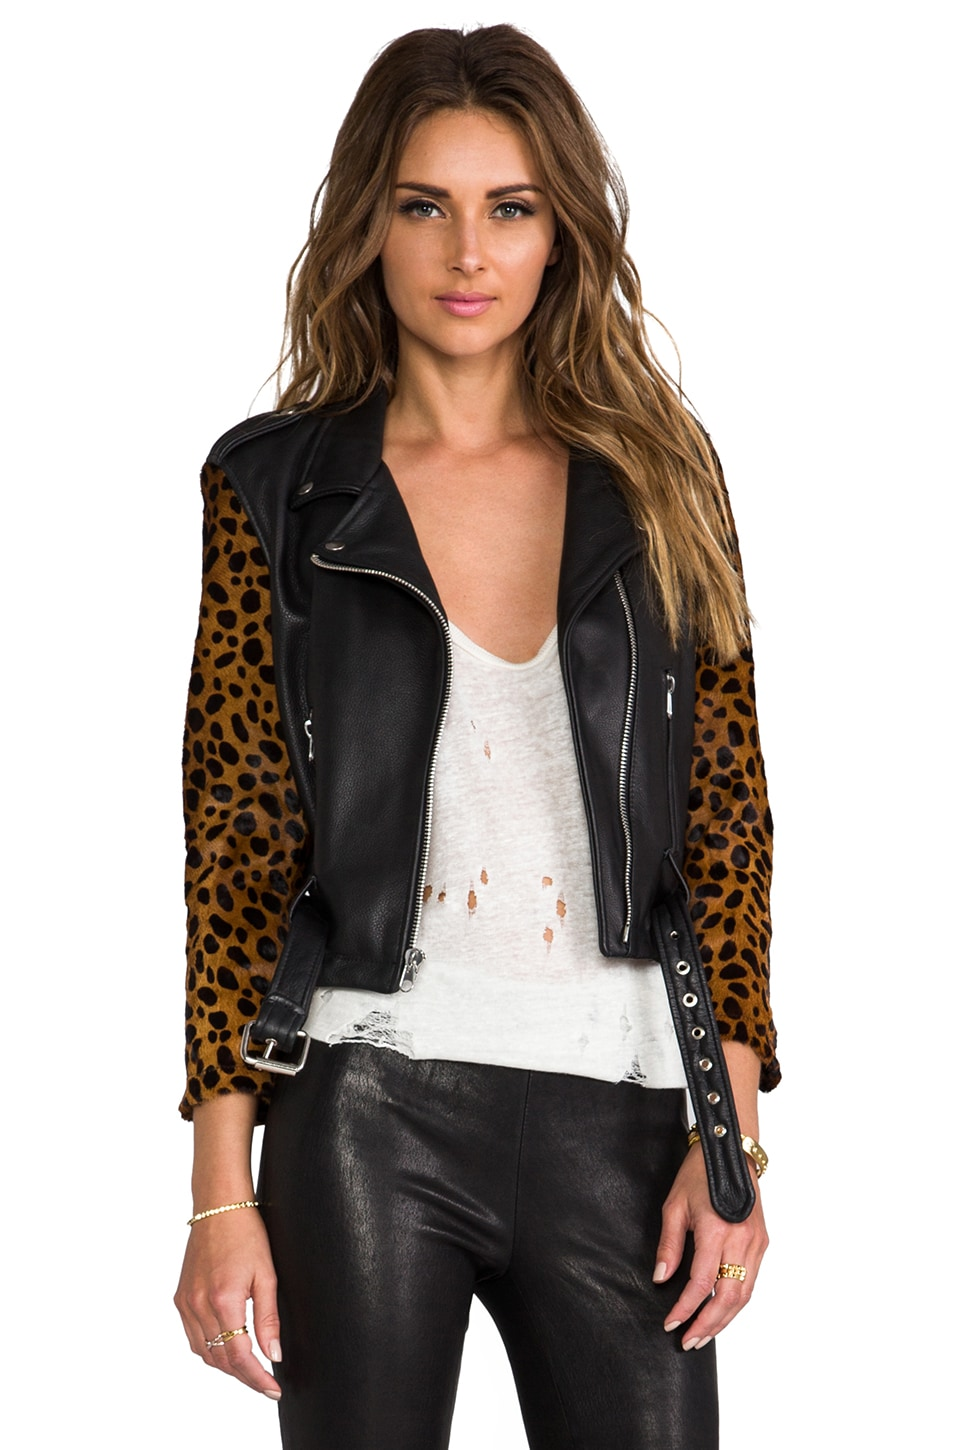 Laer Shrunken Leather Moto Jacket in Black & Cheetah